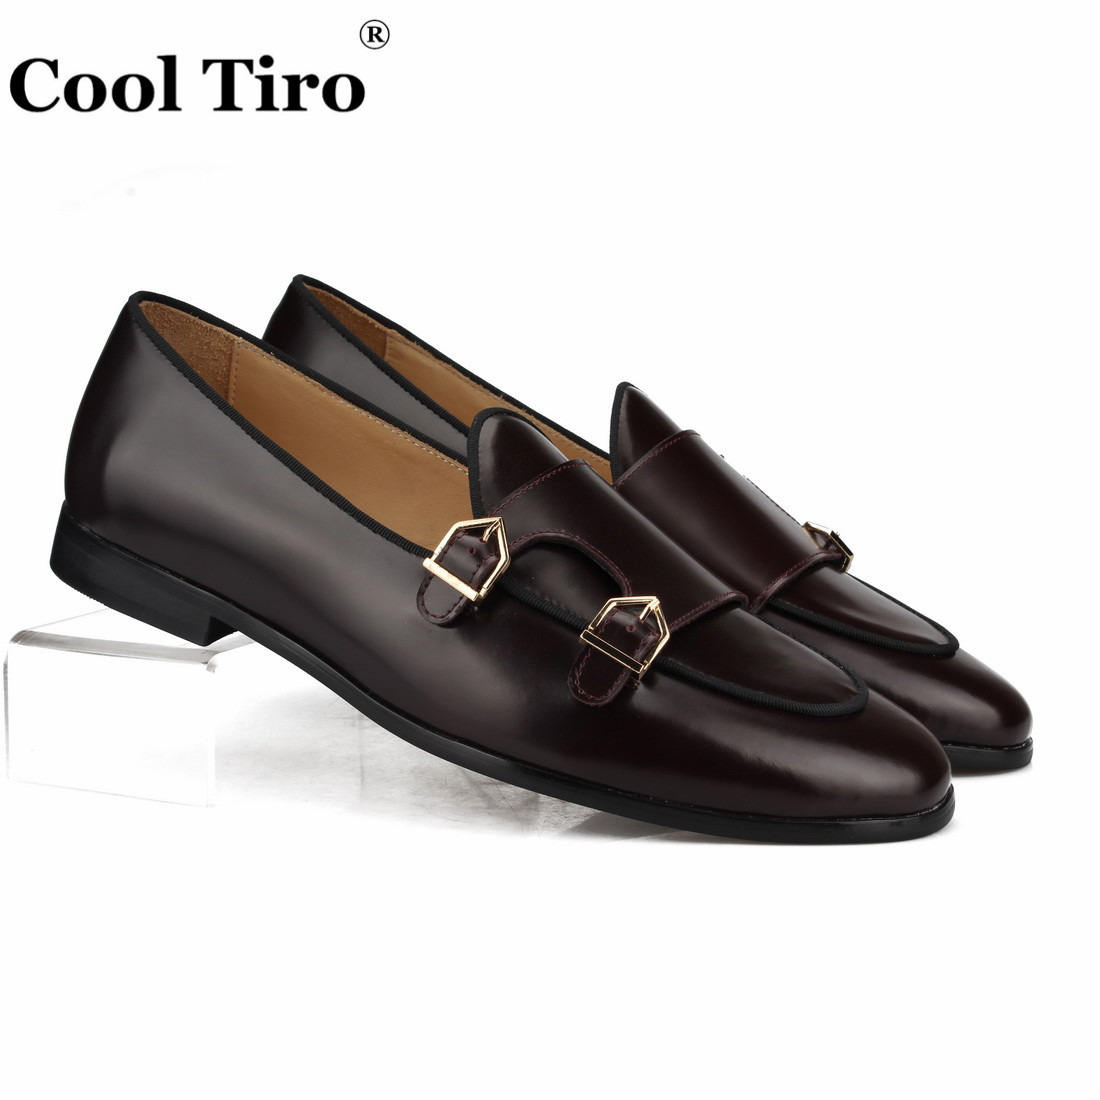 5b63d122821 Cool Tiro Black Patent leather Loafers Men Slippers Bow Tie Moccasins Man  Flats Wedding Men s Dress Shoes Casual slip on shoes